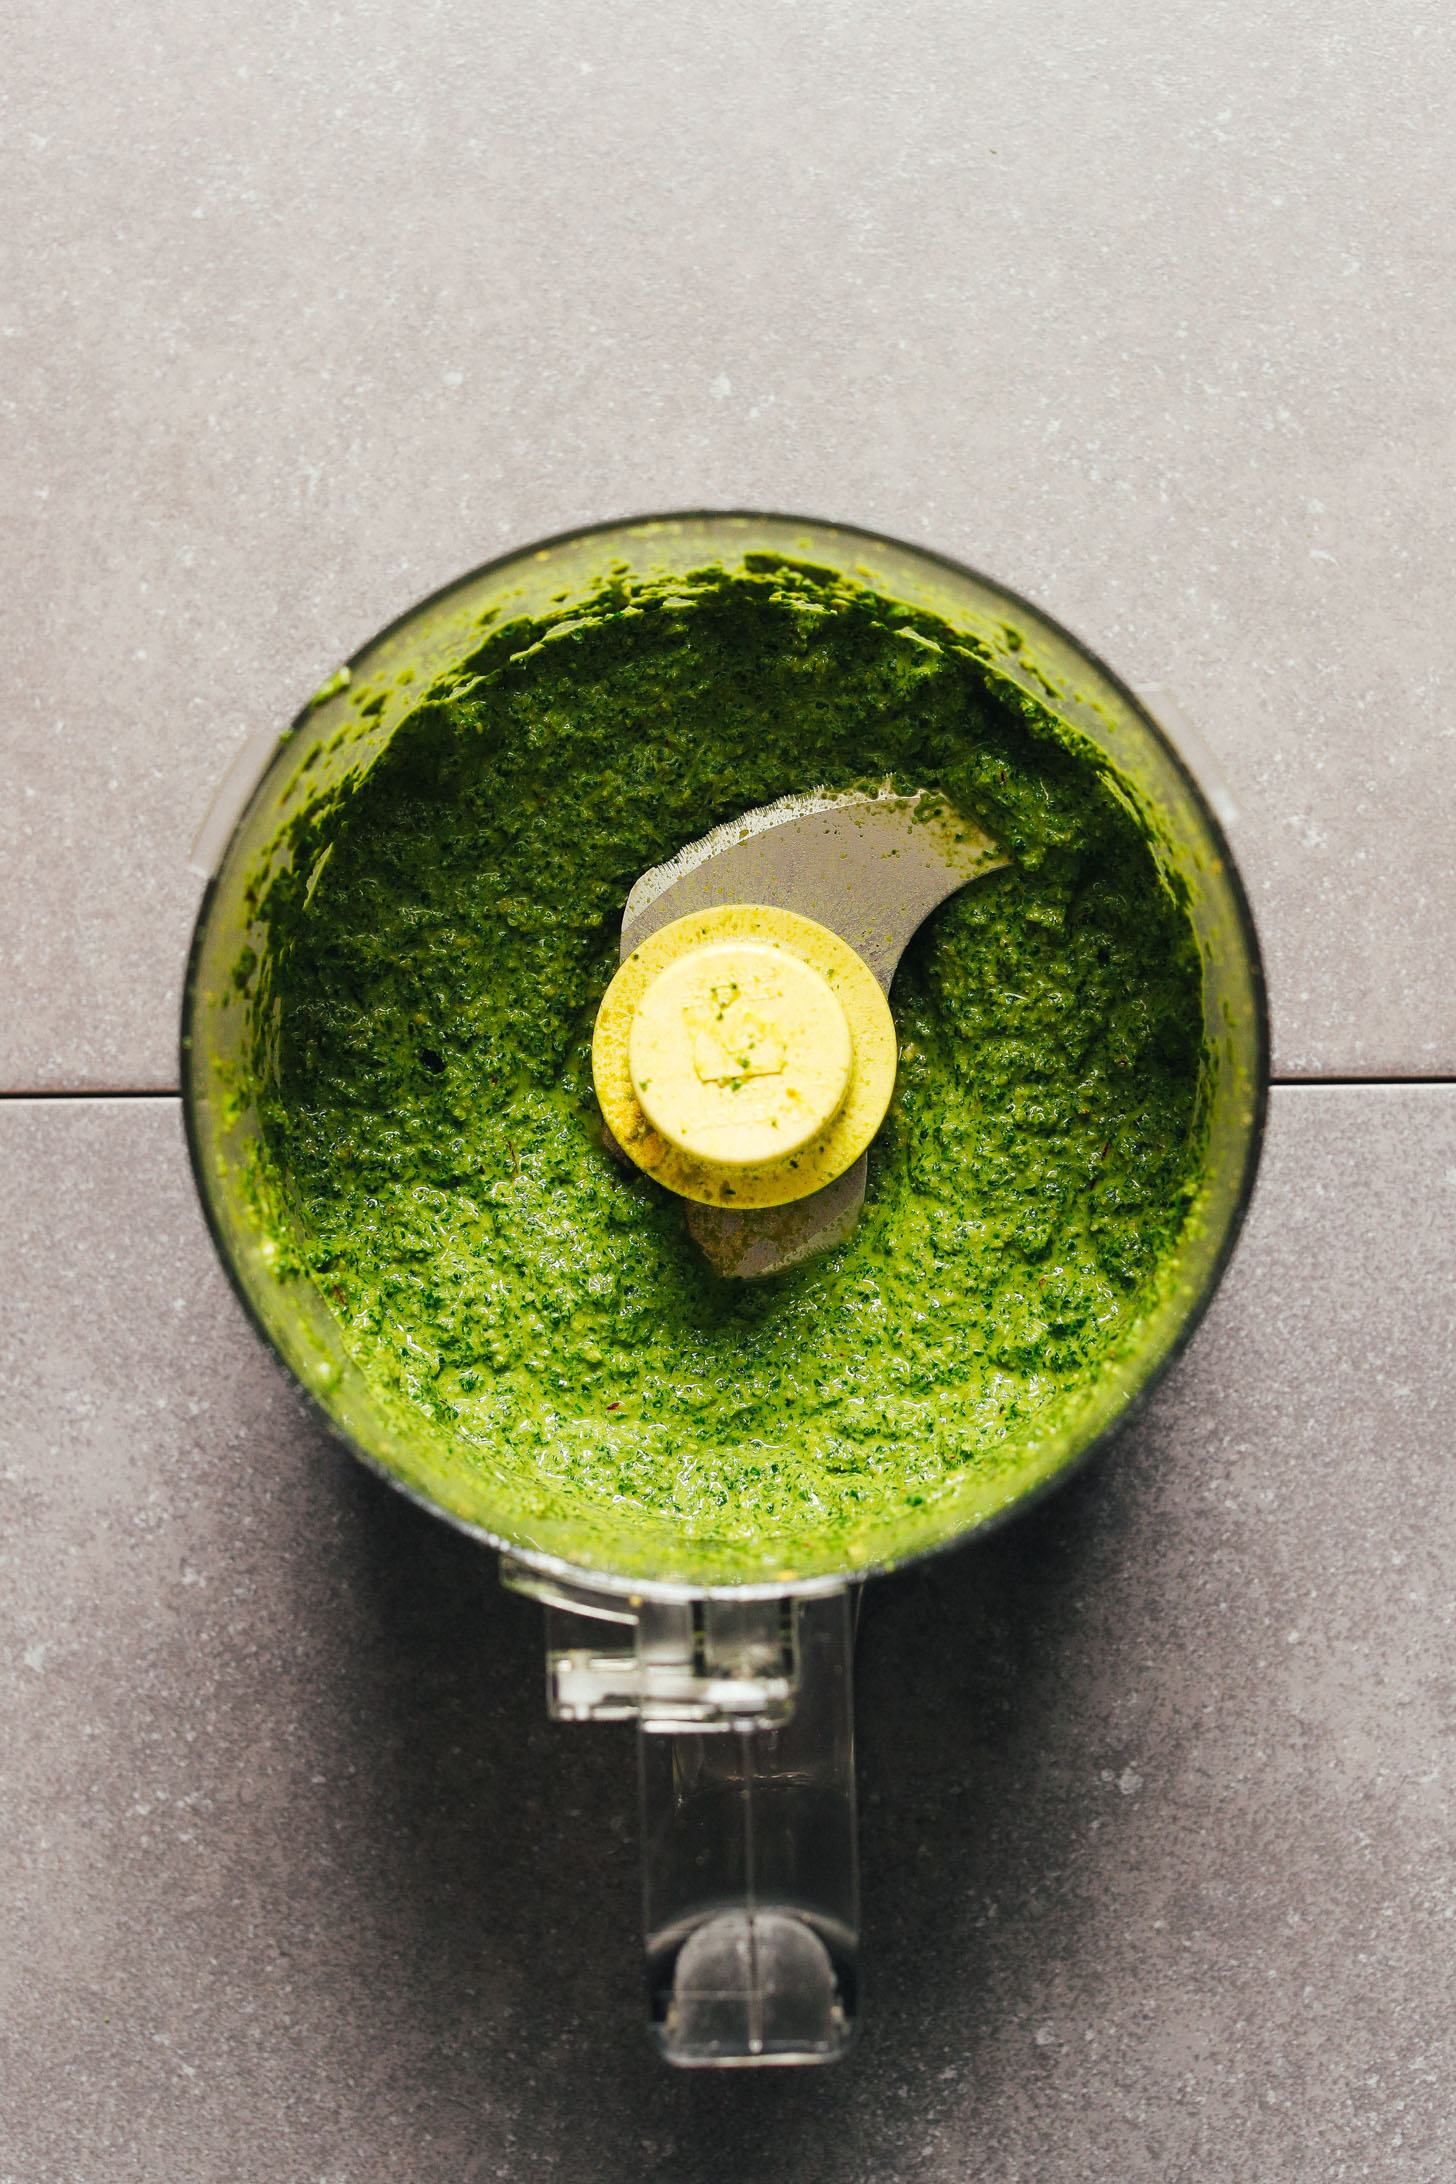 Food processor with freshly pulsed pesto made with vegan and gluten-free ingredients